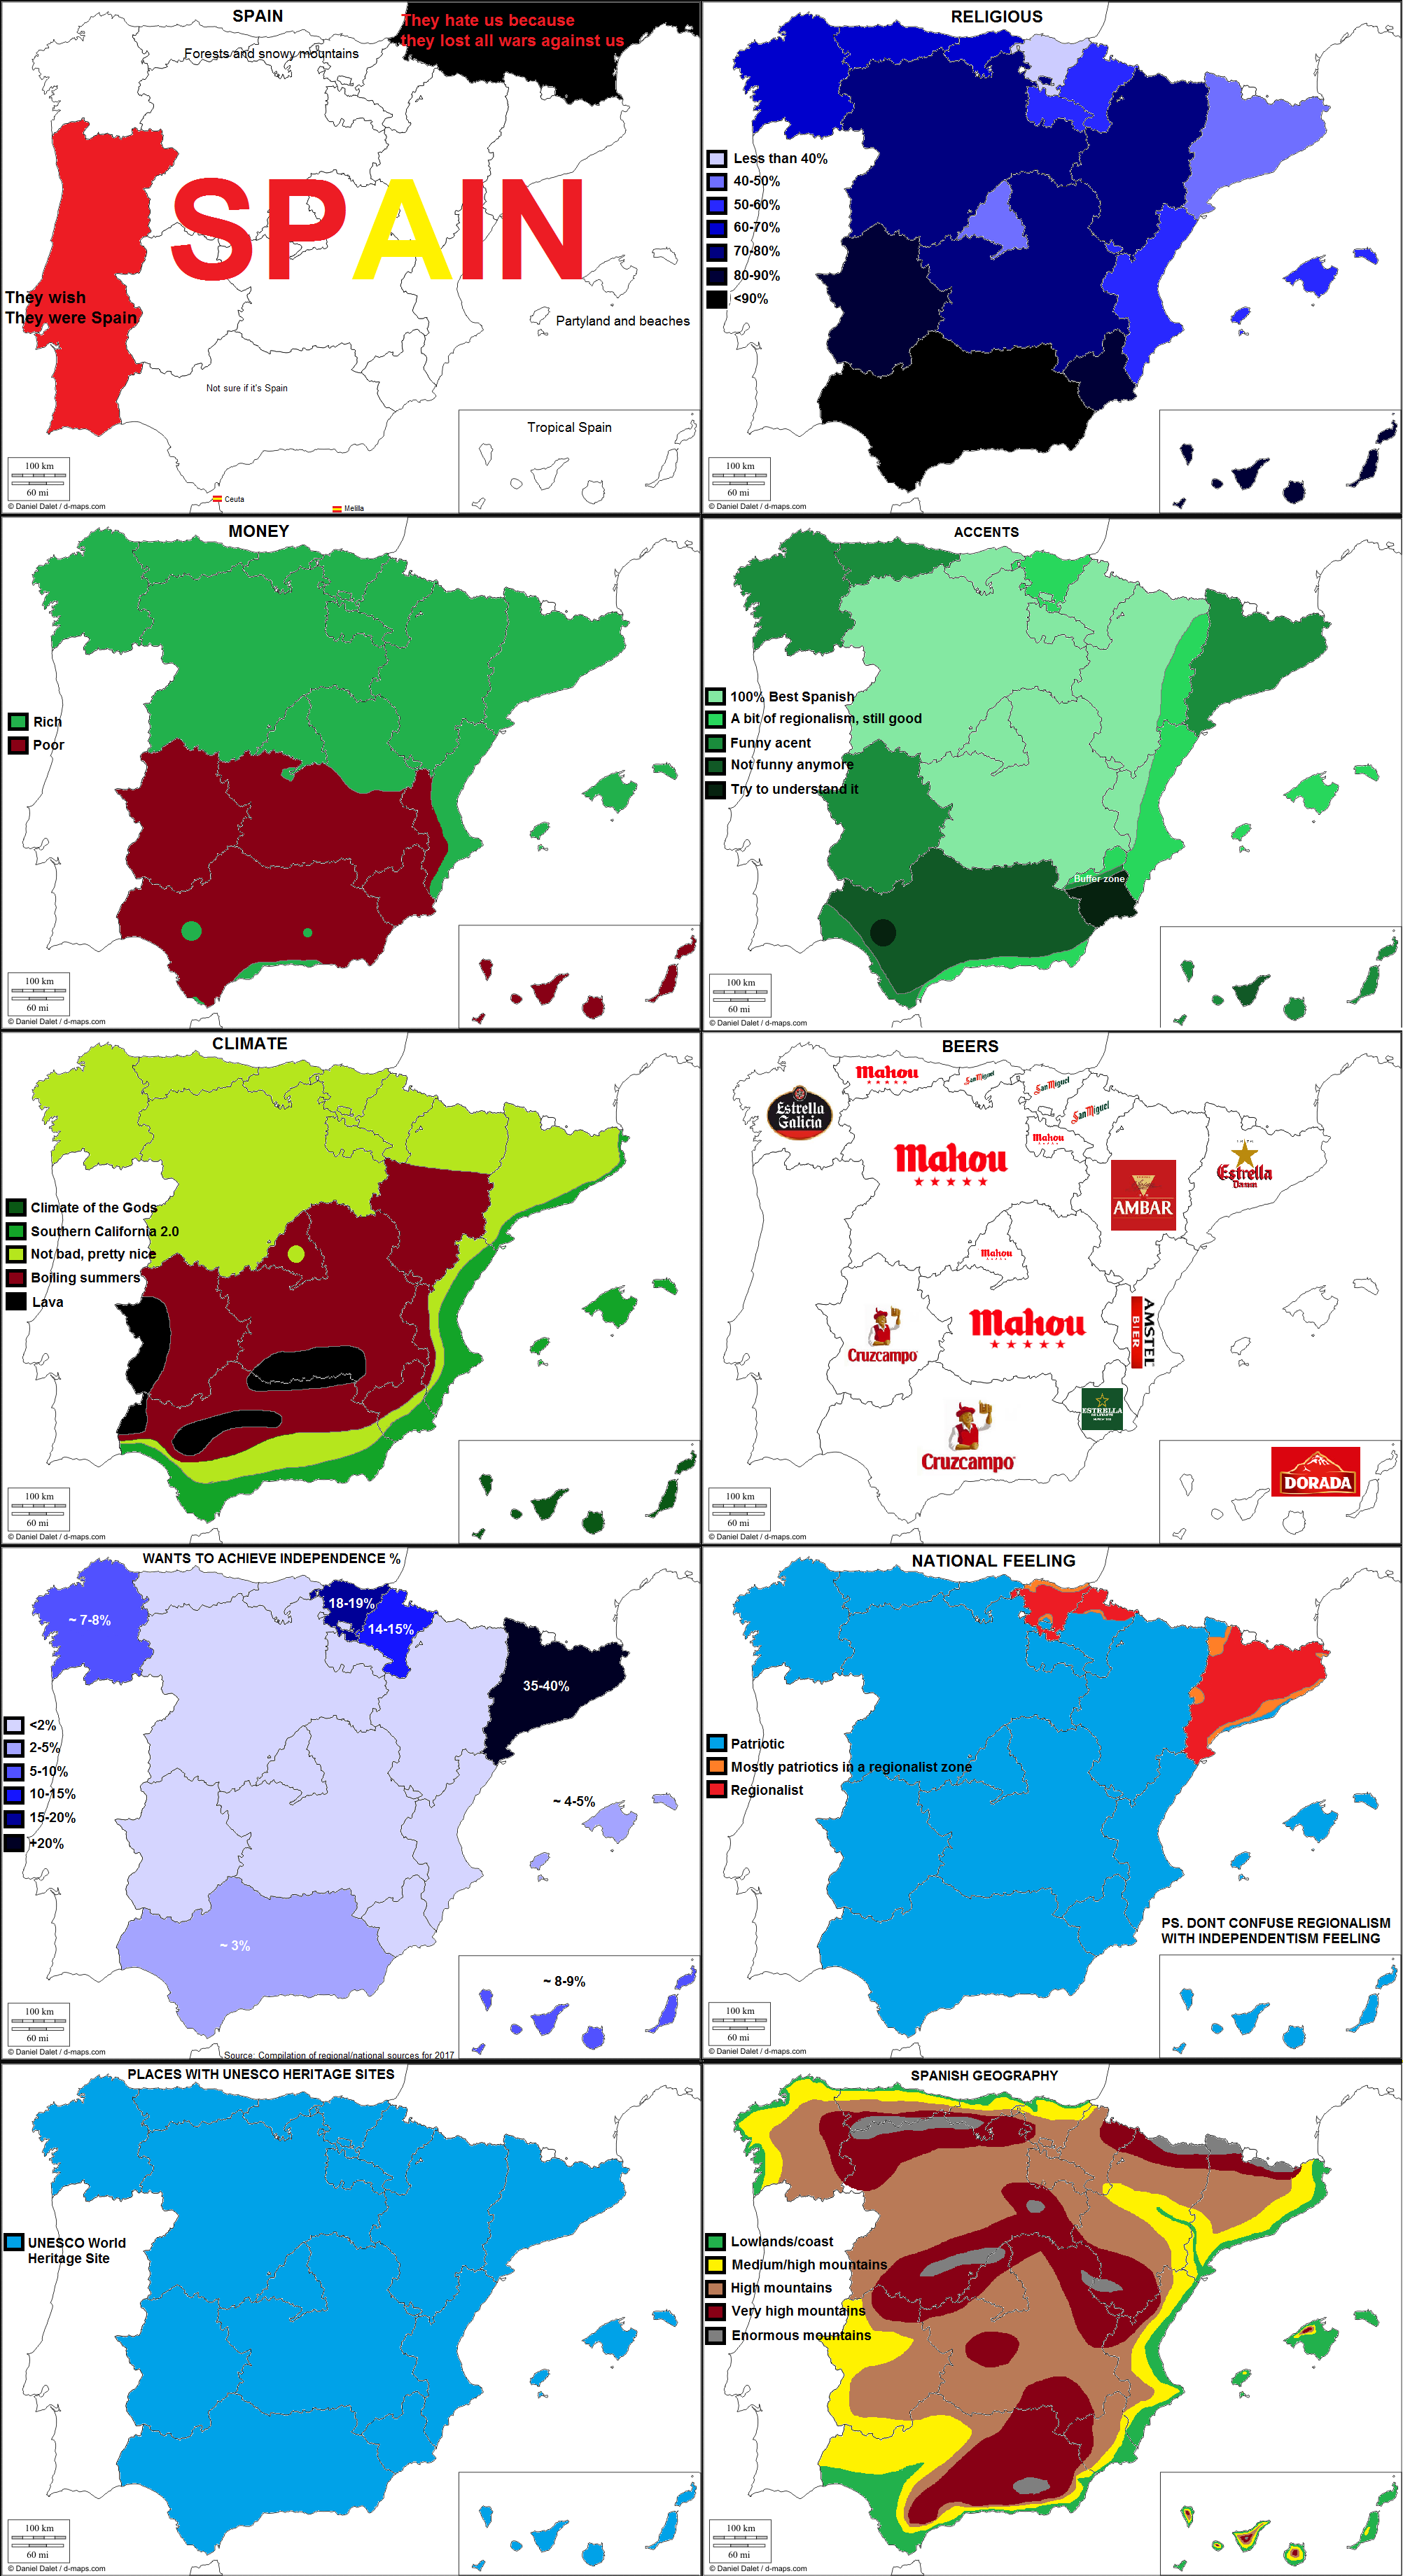 10 ways to divide Spain   Maps   Spain, Historical maps, World geography